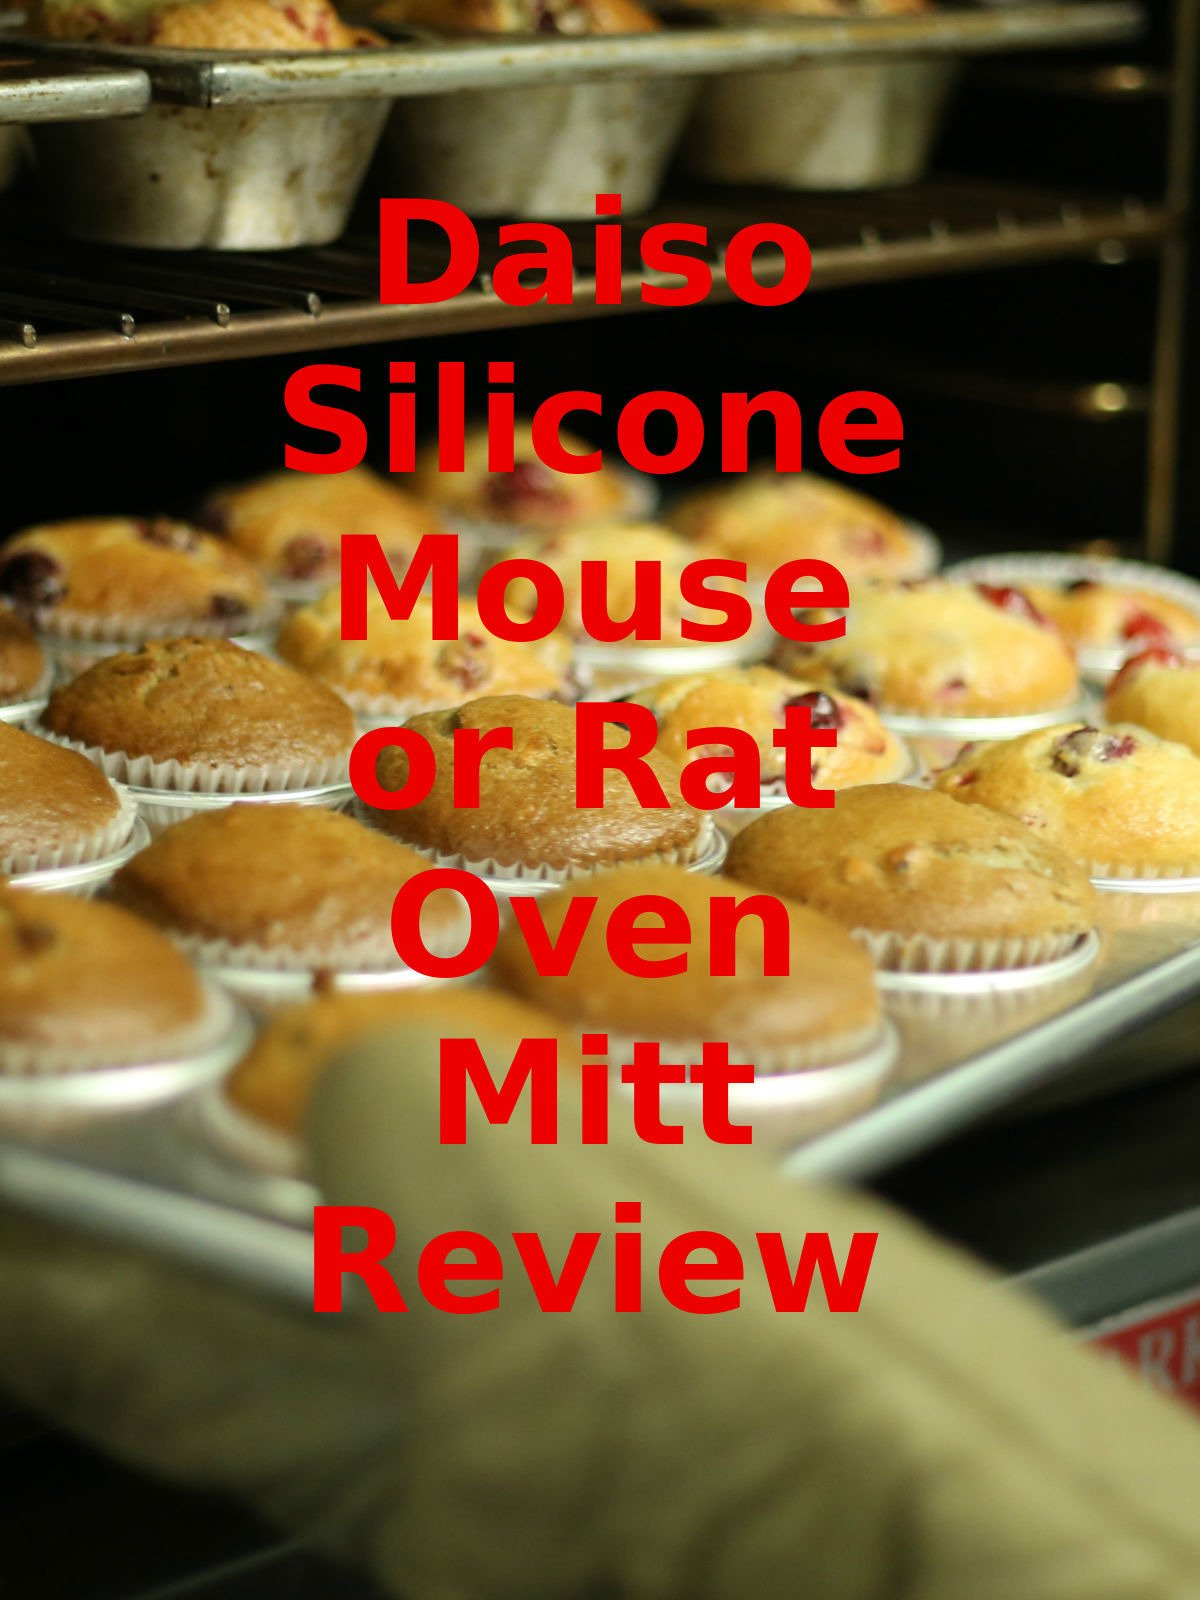 Review: Daiso Silicone Mouse or Rat Oven Mitt Review